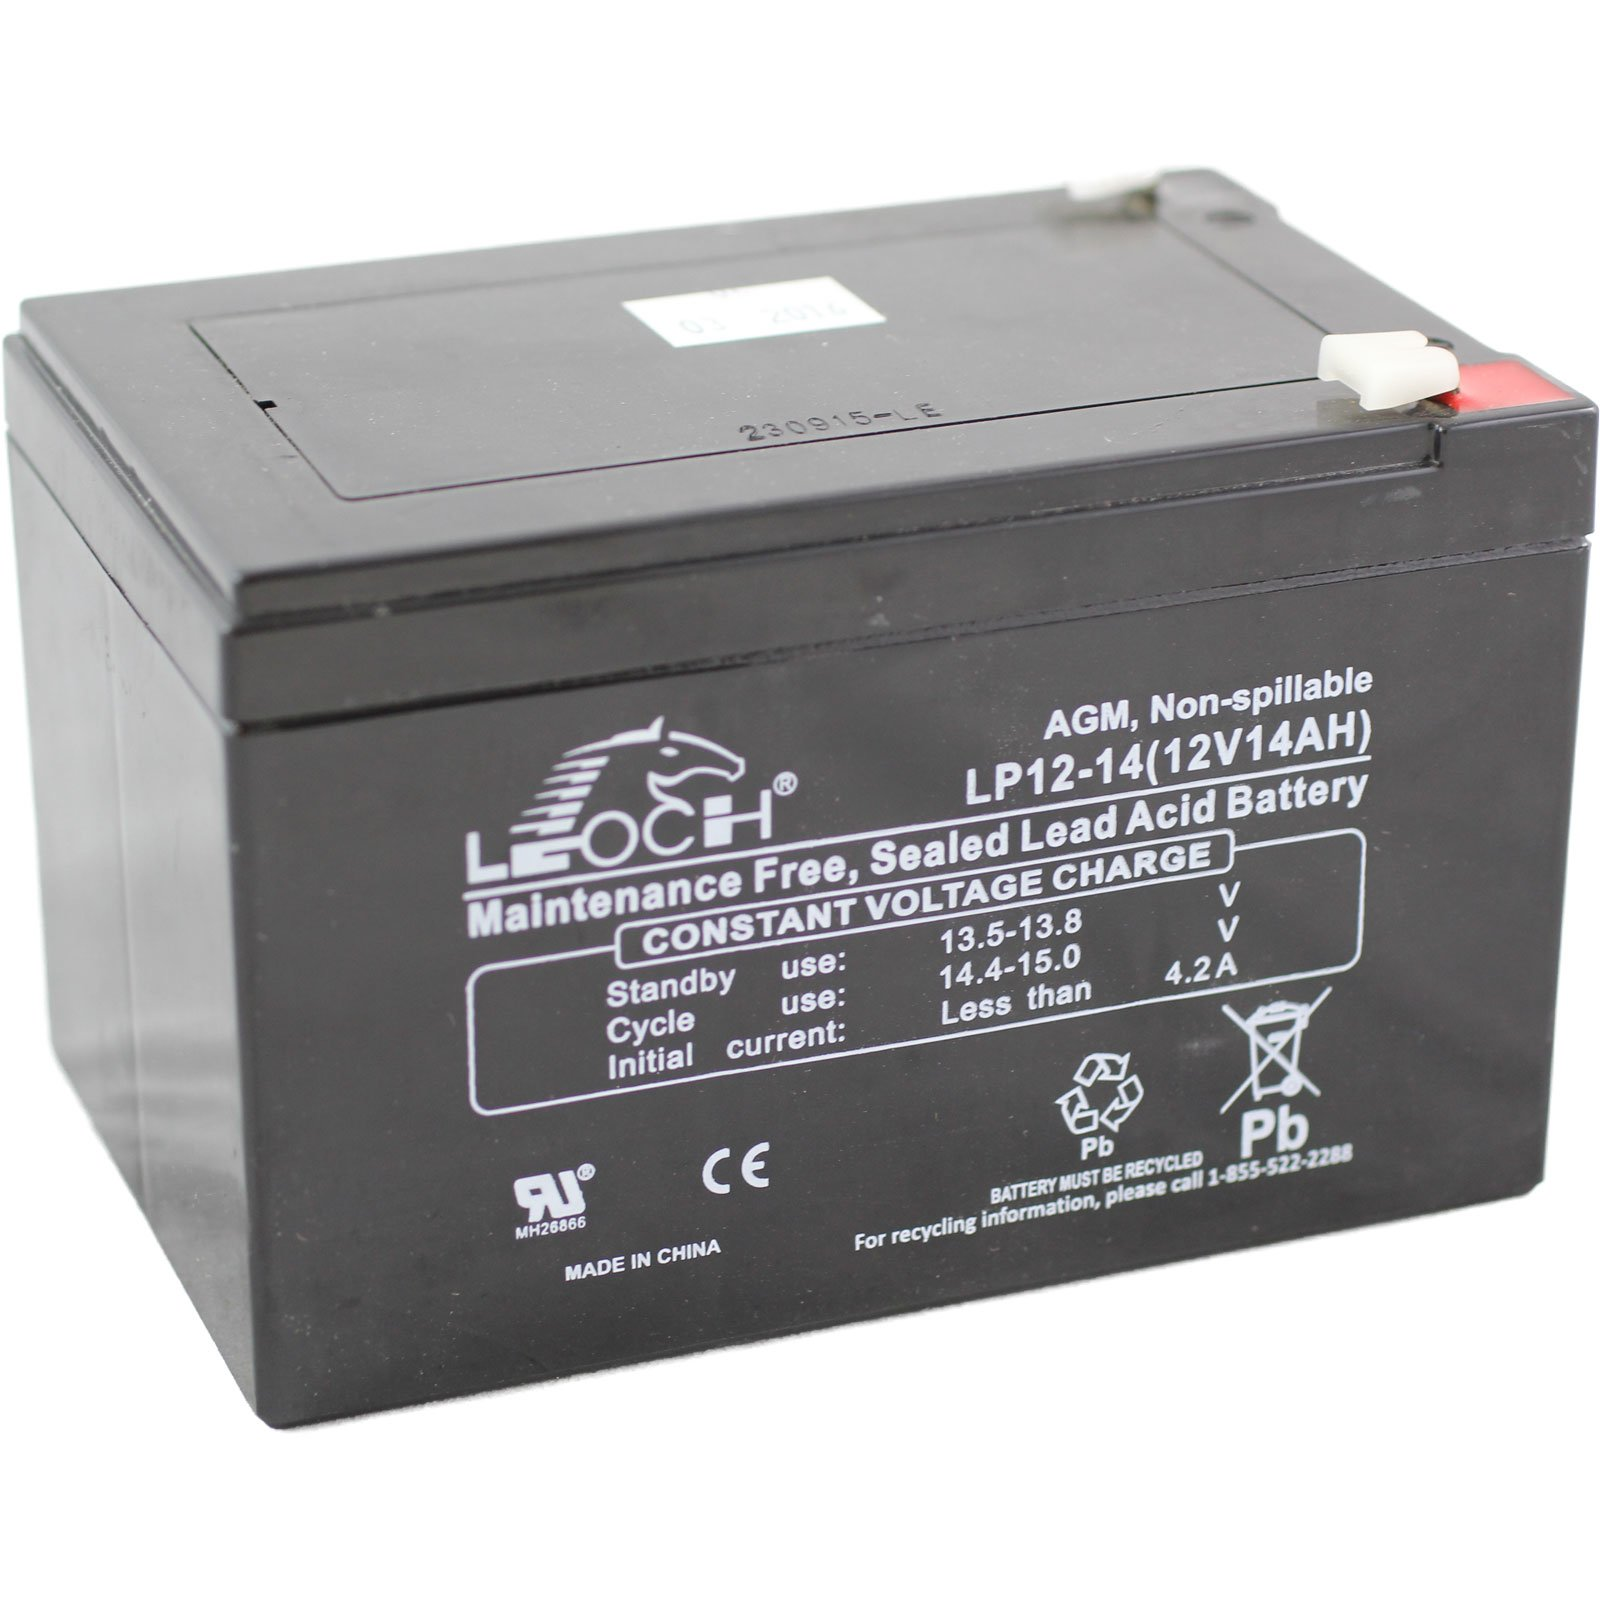 Solar Rechargeable Batteries >> 12 Volt 14 Ah Sealed Lead Acid Rechargeable Battery - F2 Terminal: BatteryMart.com